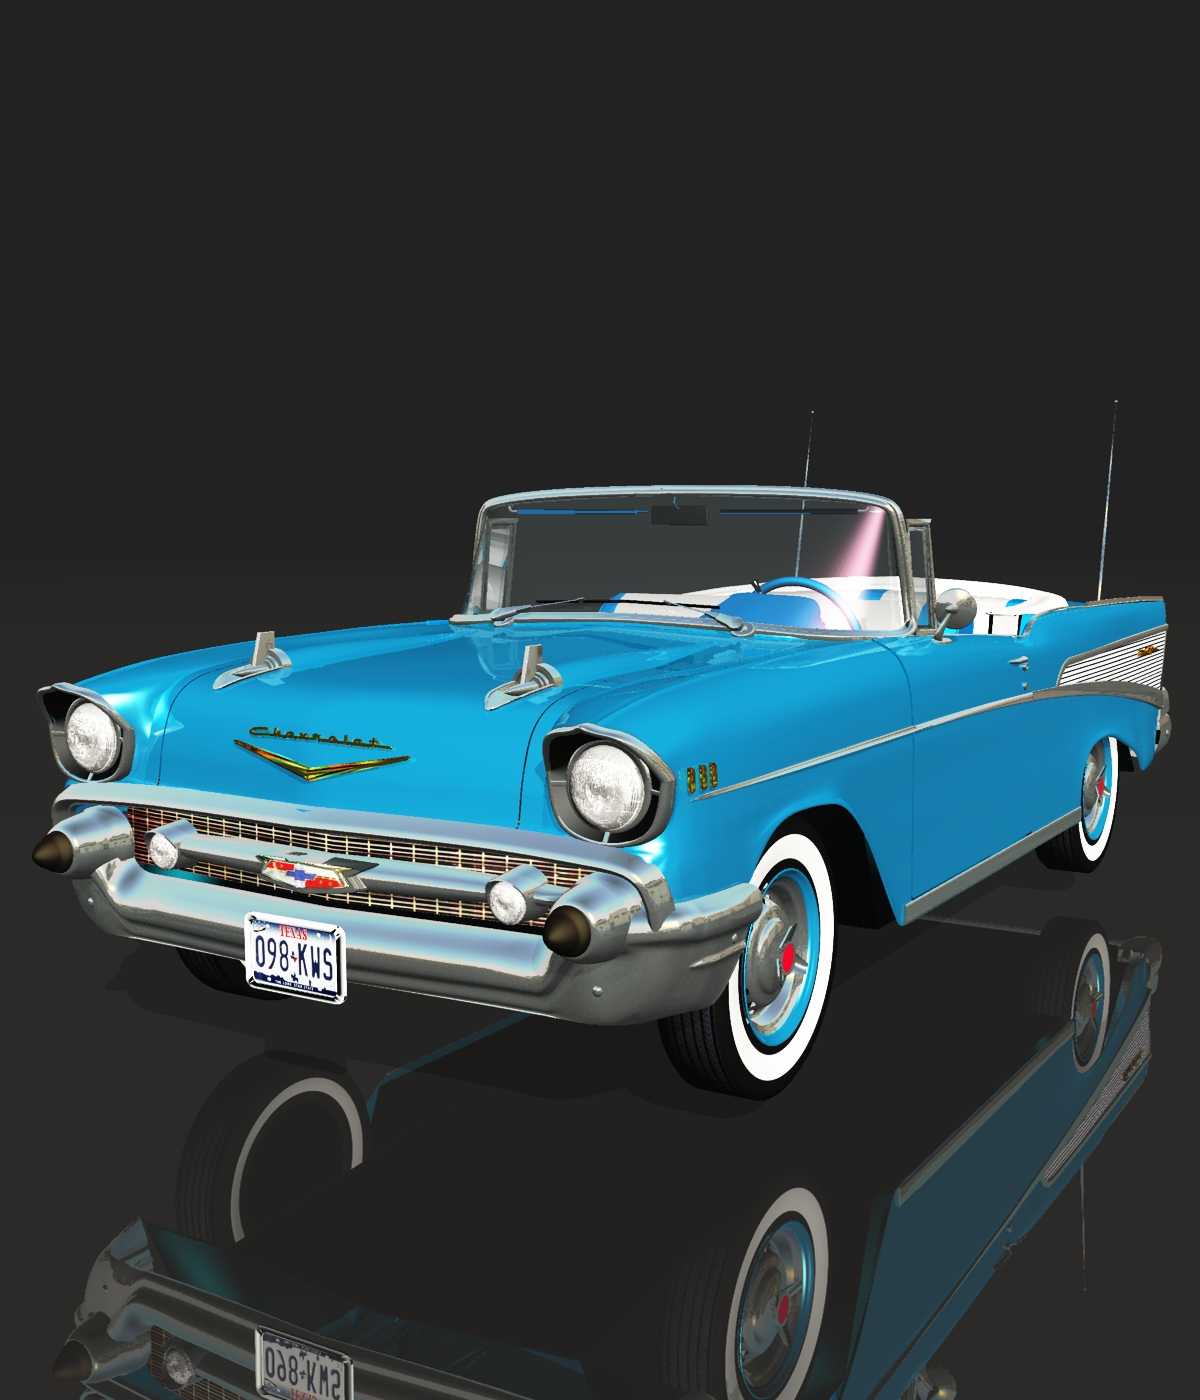 chevrolet bel air 1957 for vue 3d models 3dclassics. Black Bedroom Furniture Sets. Home Design Ideas